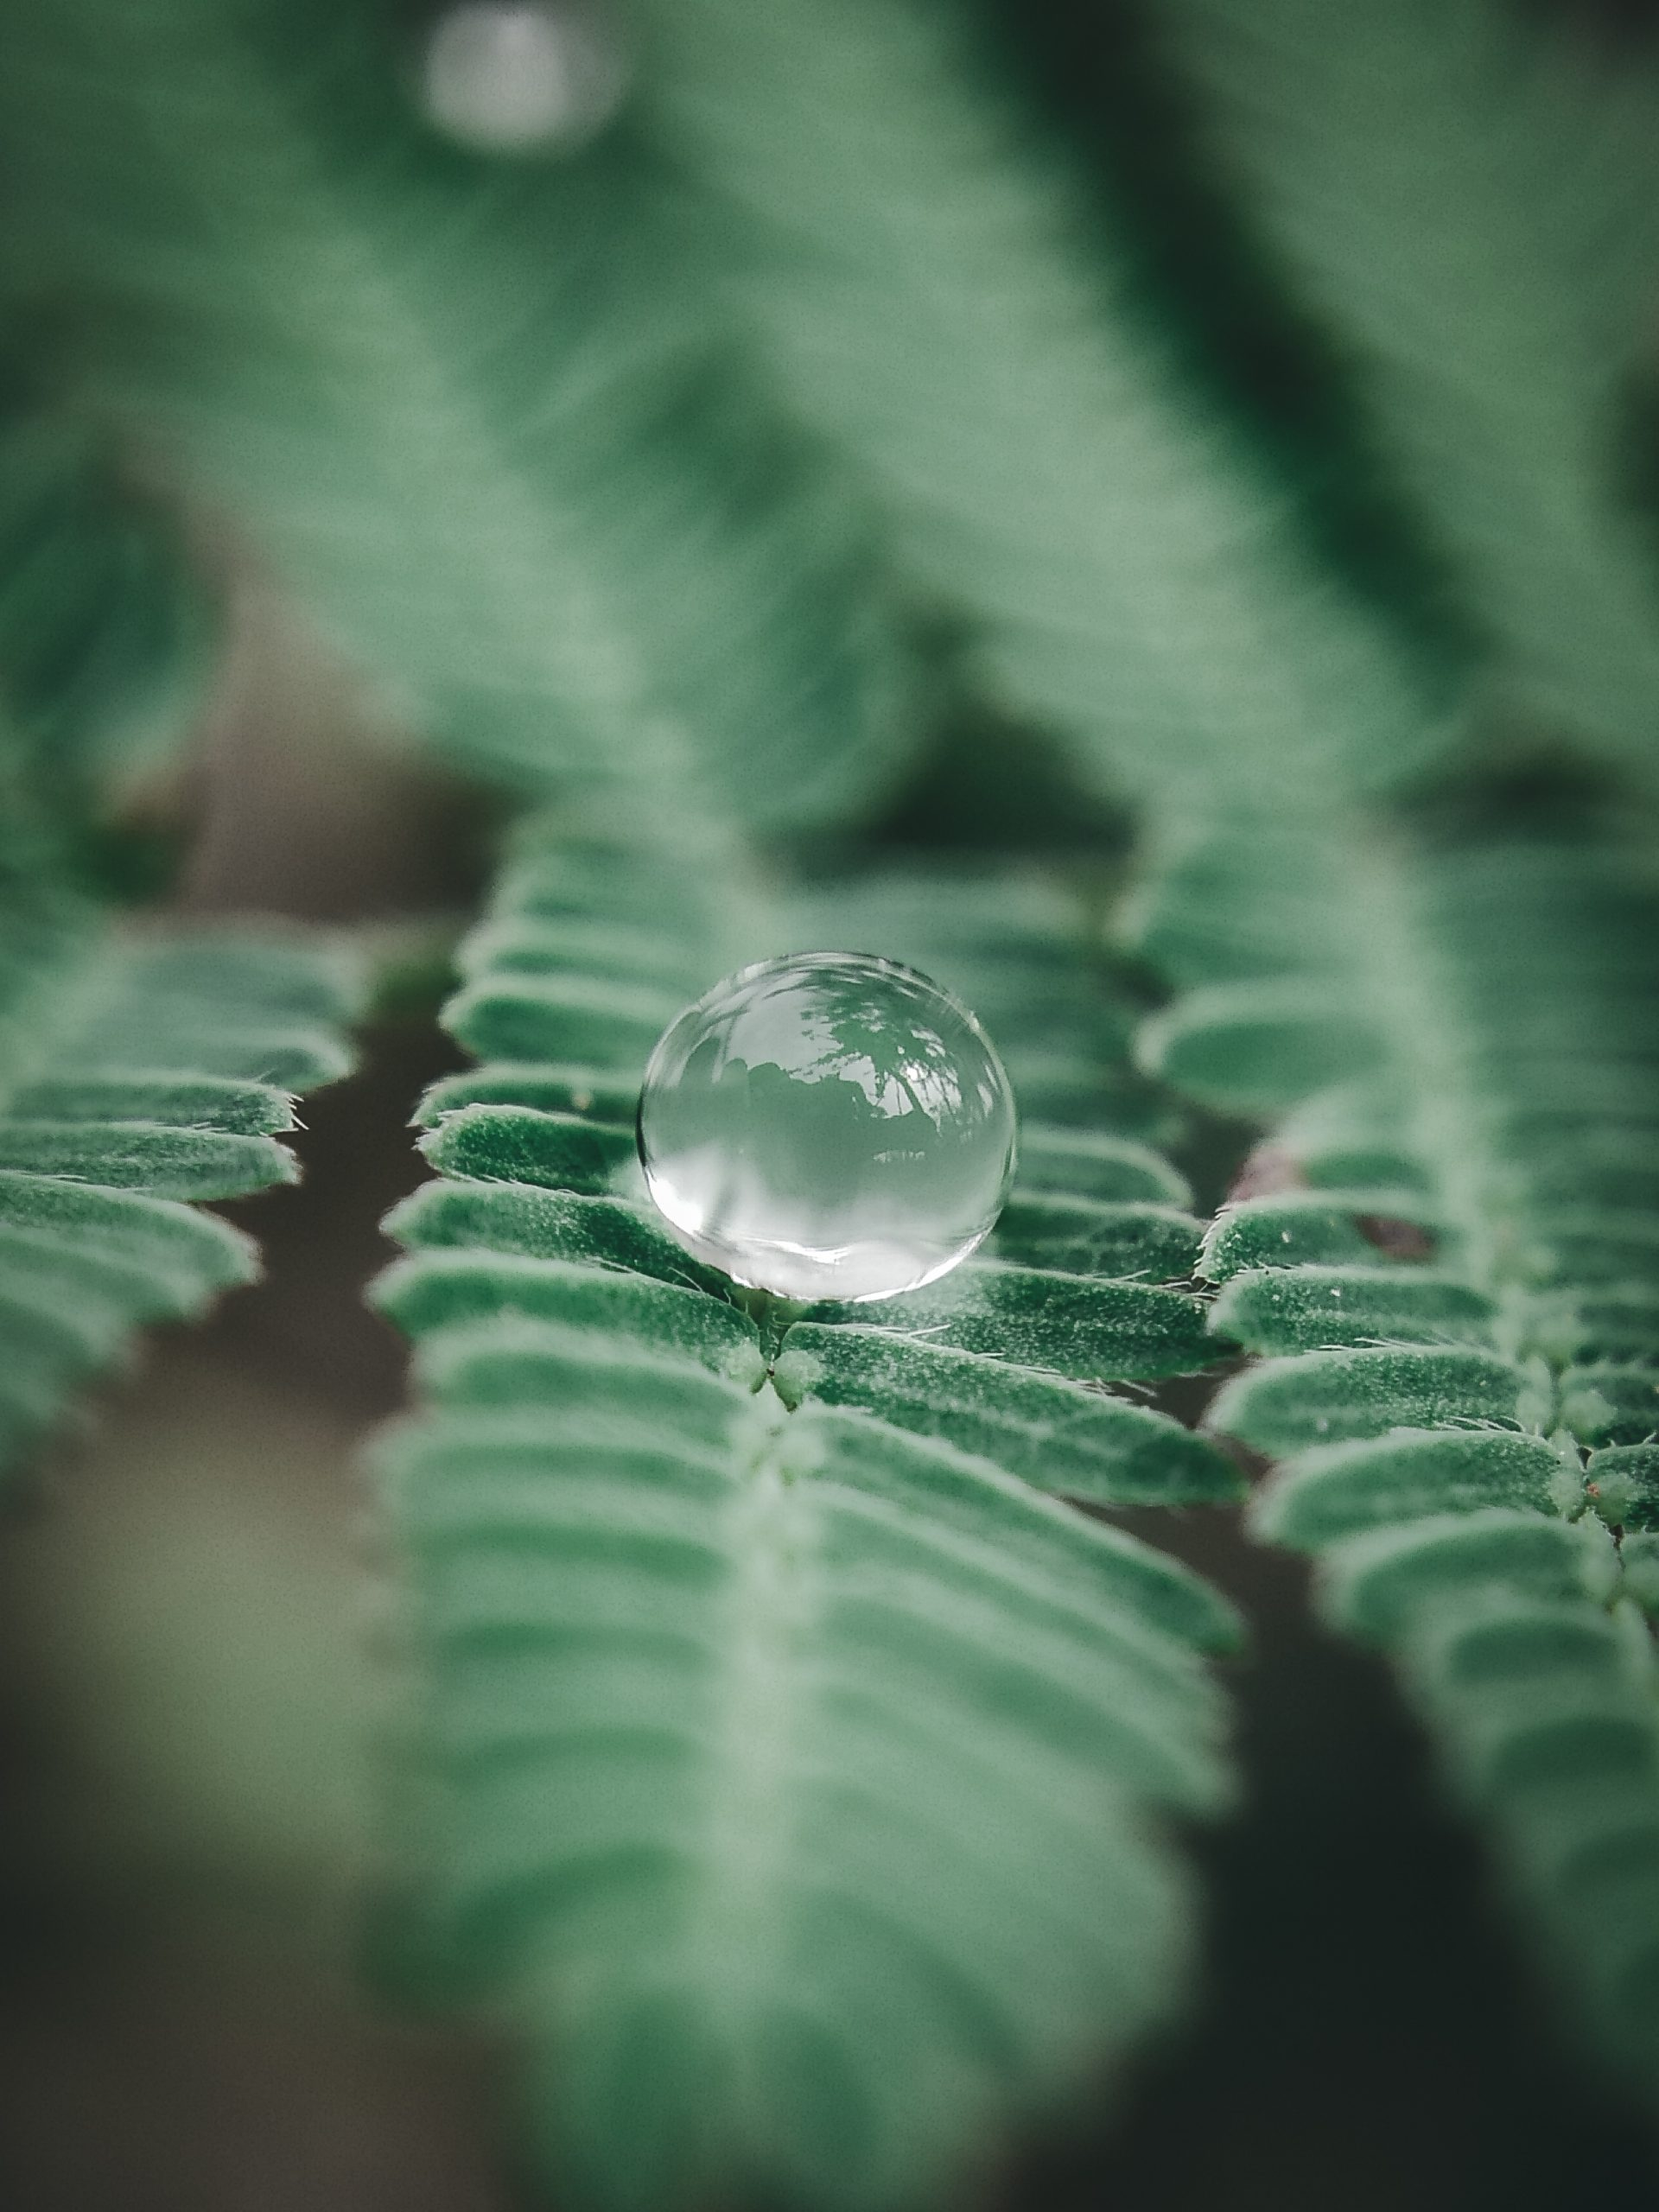 A water drop on green leaves